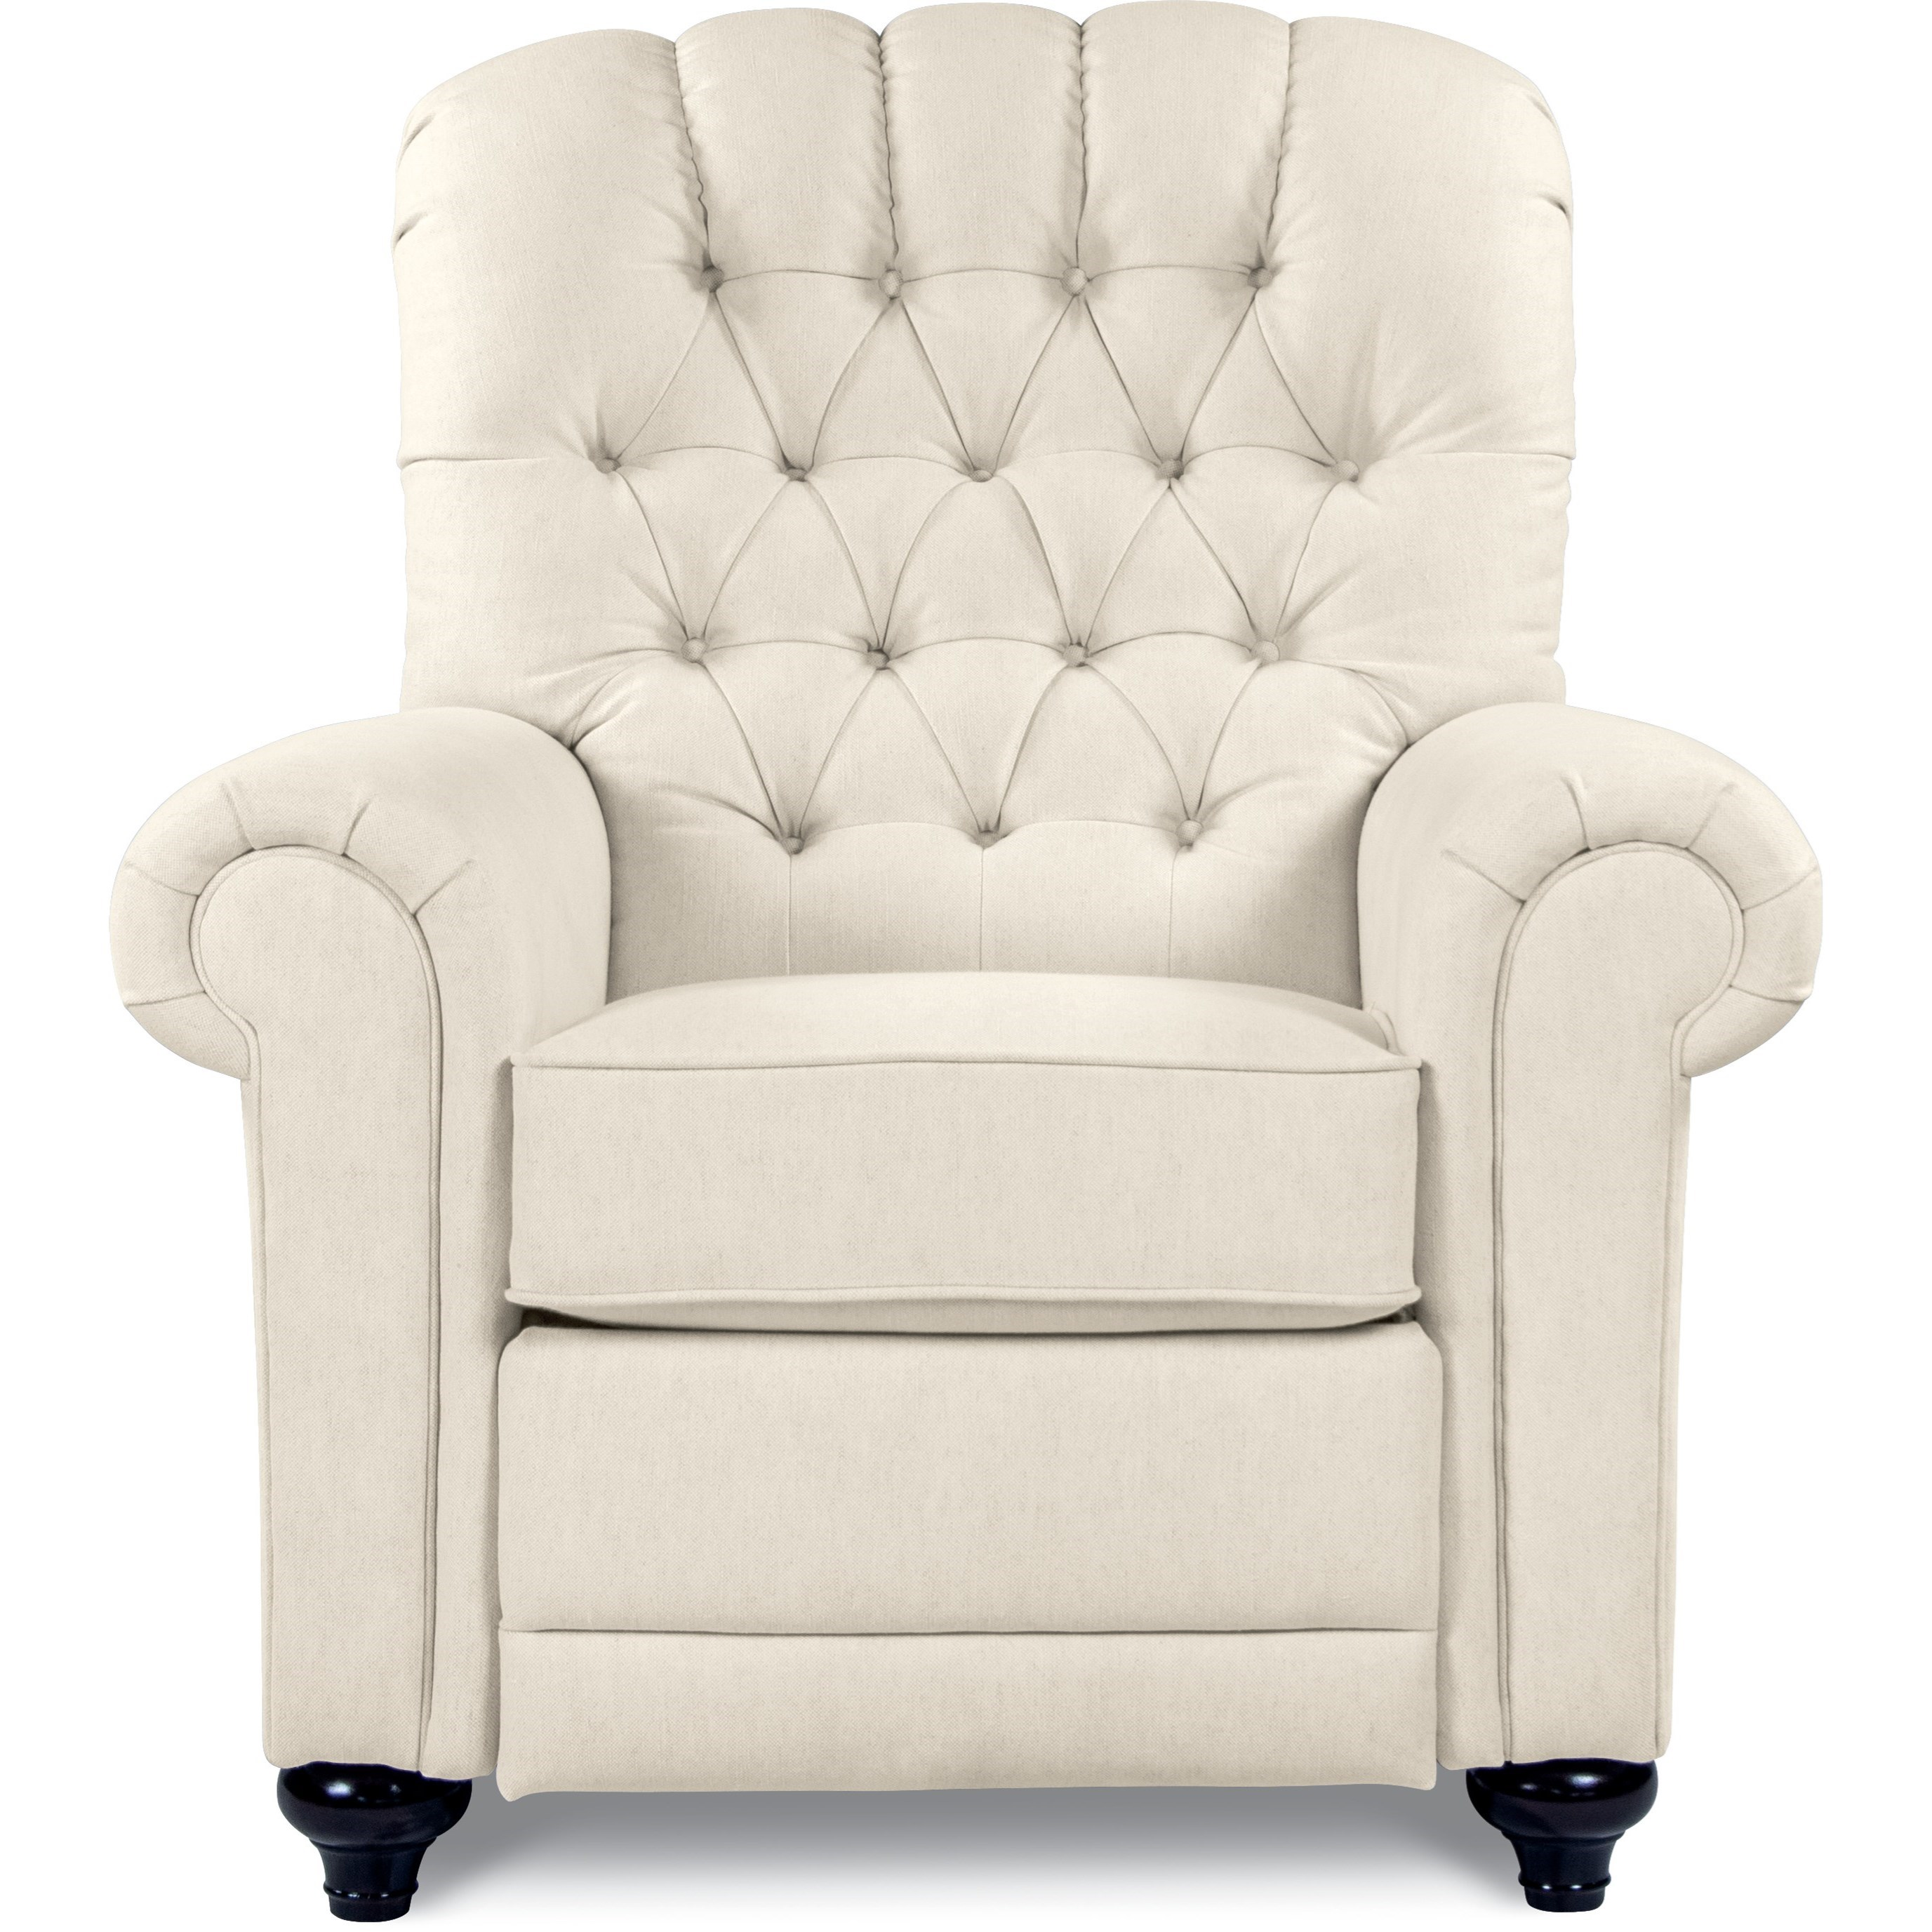 Whitman Tufted Push-Back Recliner · Whitman Low Profile Recliner  sc 1 st  Wolf Furniture & Whitman Tufted Push-Back Recliner by La-Z-Boy | Wolf and Gardiner ... islam-shia.org